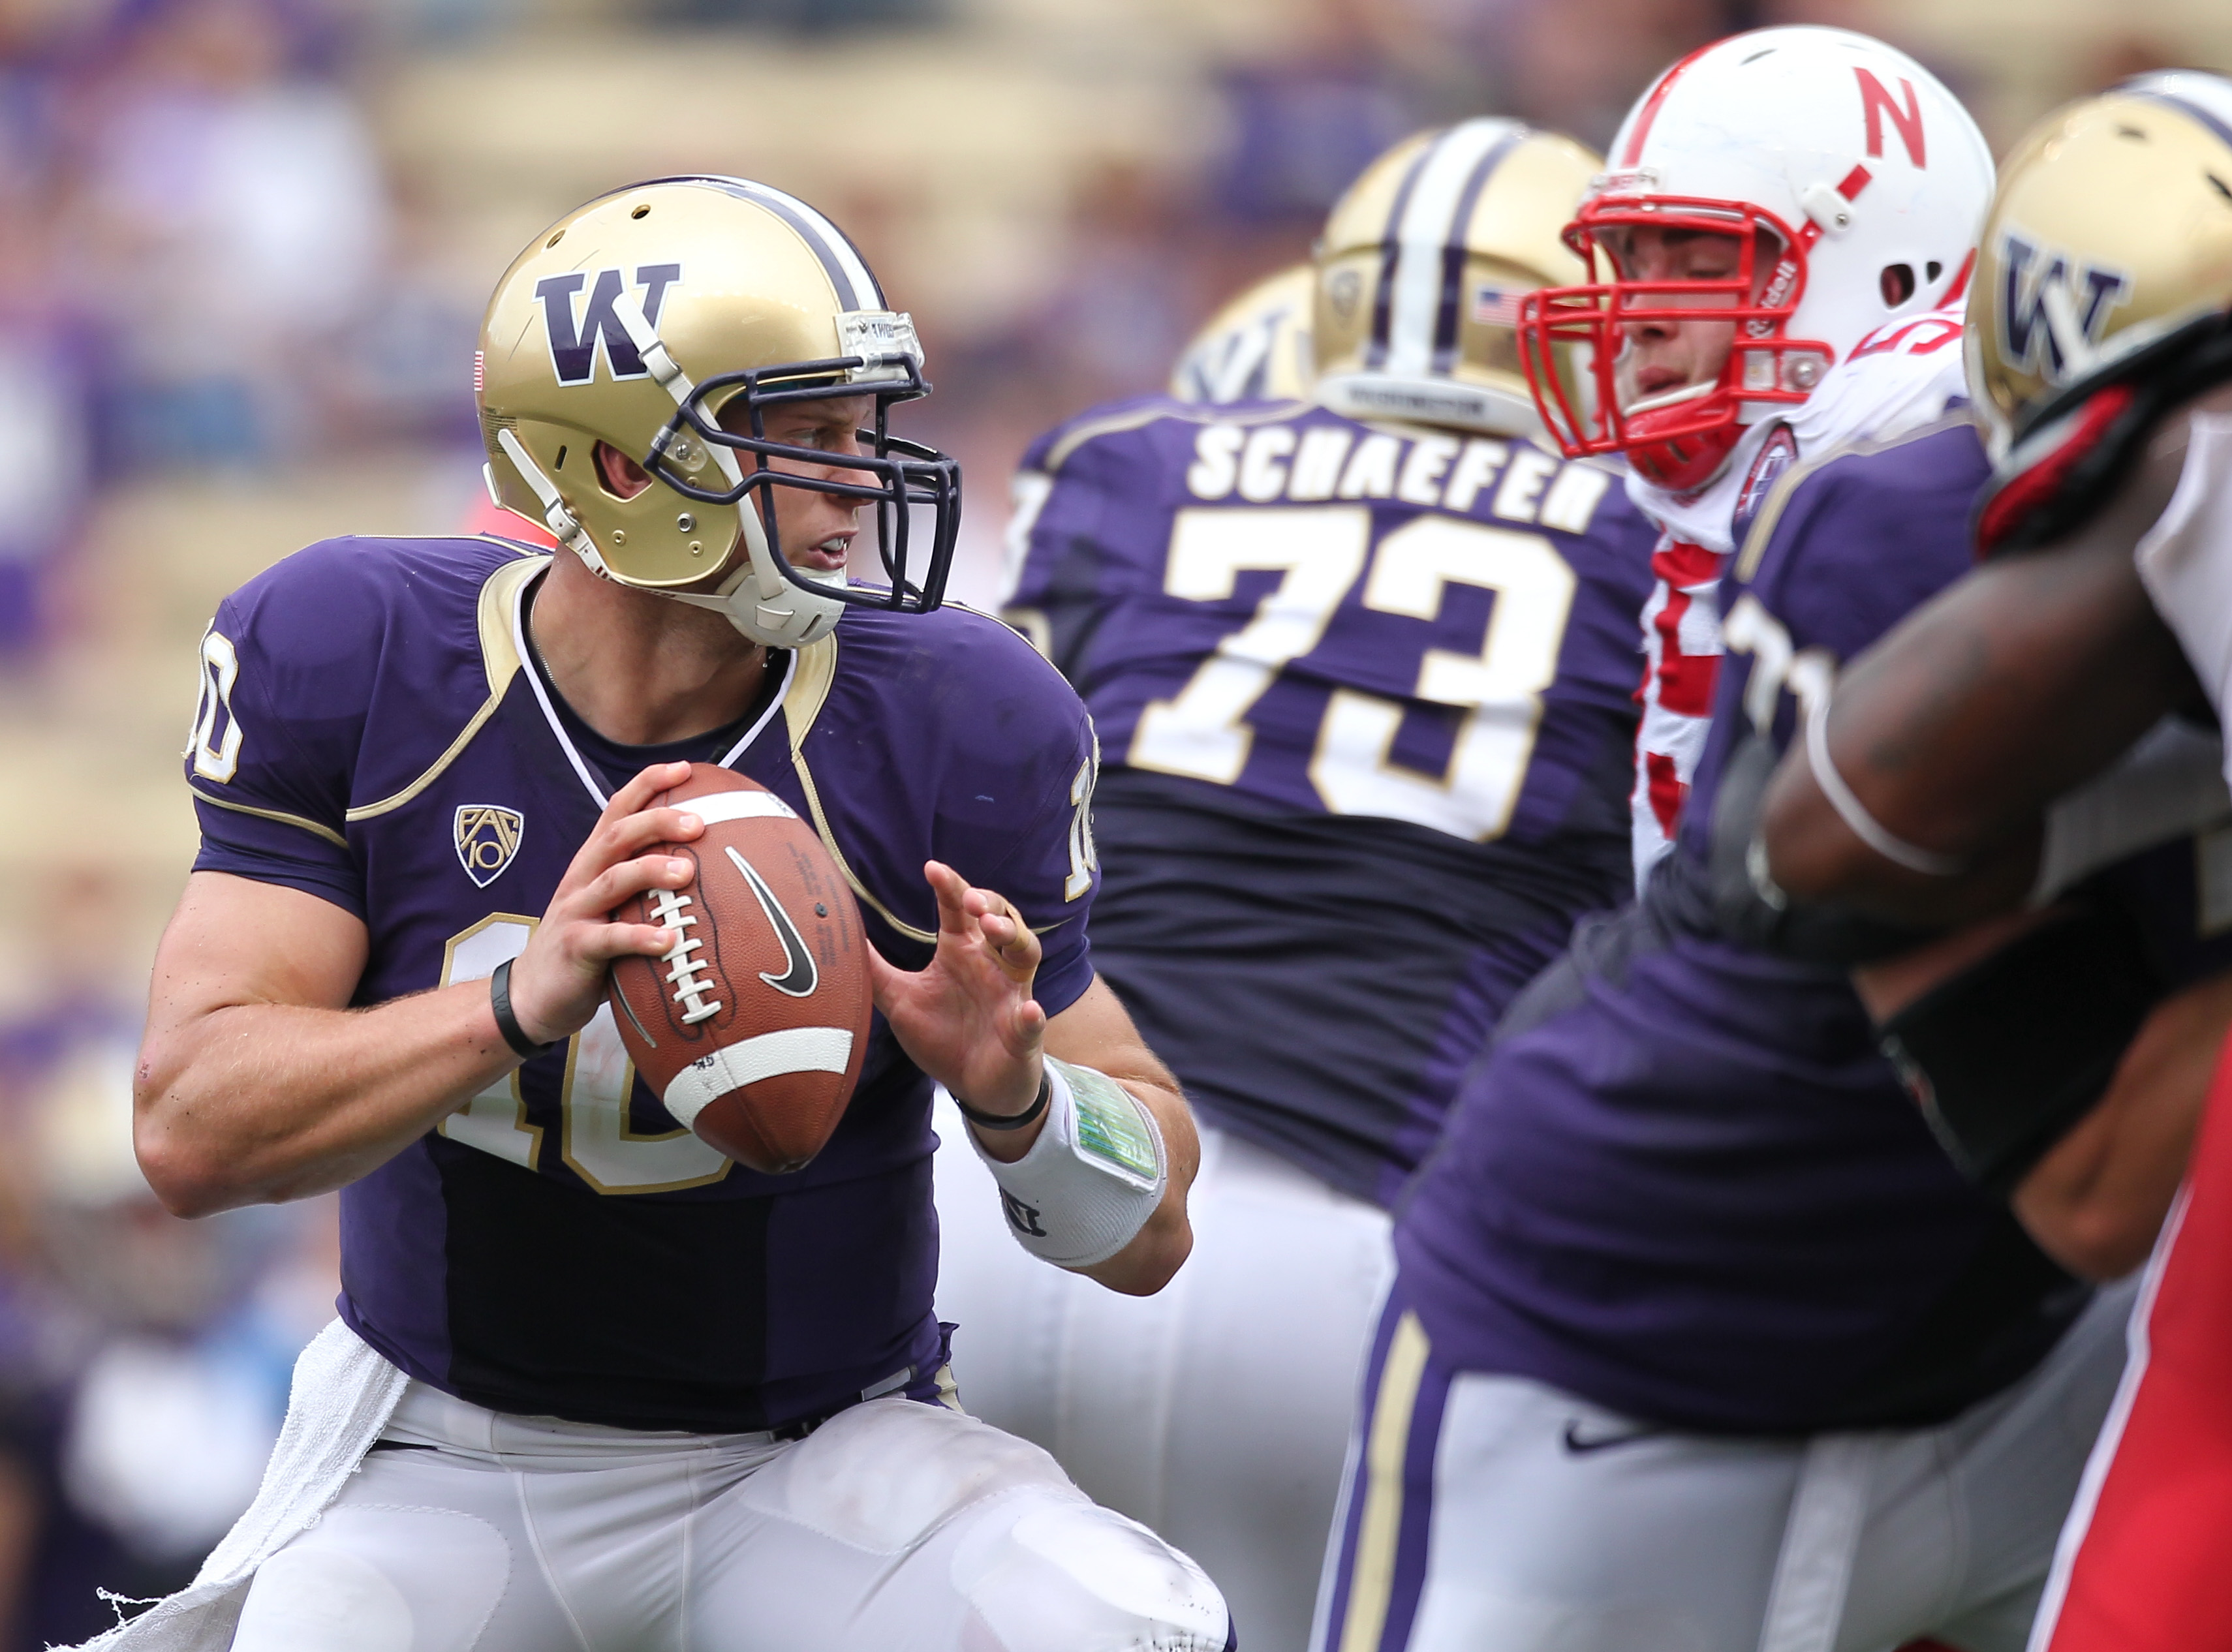 SEATTLE - SEPTEMBER 18: Quarterback Jake Locker #10 of the Washington Huskies looks downfield against the Nebraska Cornhuskers on September 18, 2010 at Husky Stadium in Seattle, Washington. (Photo by Otto Greule Jr/Getty Images)